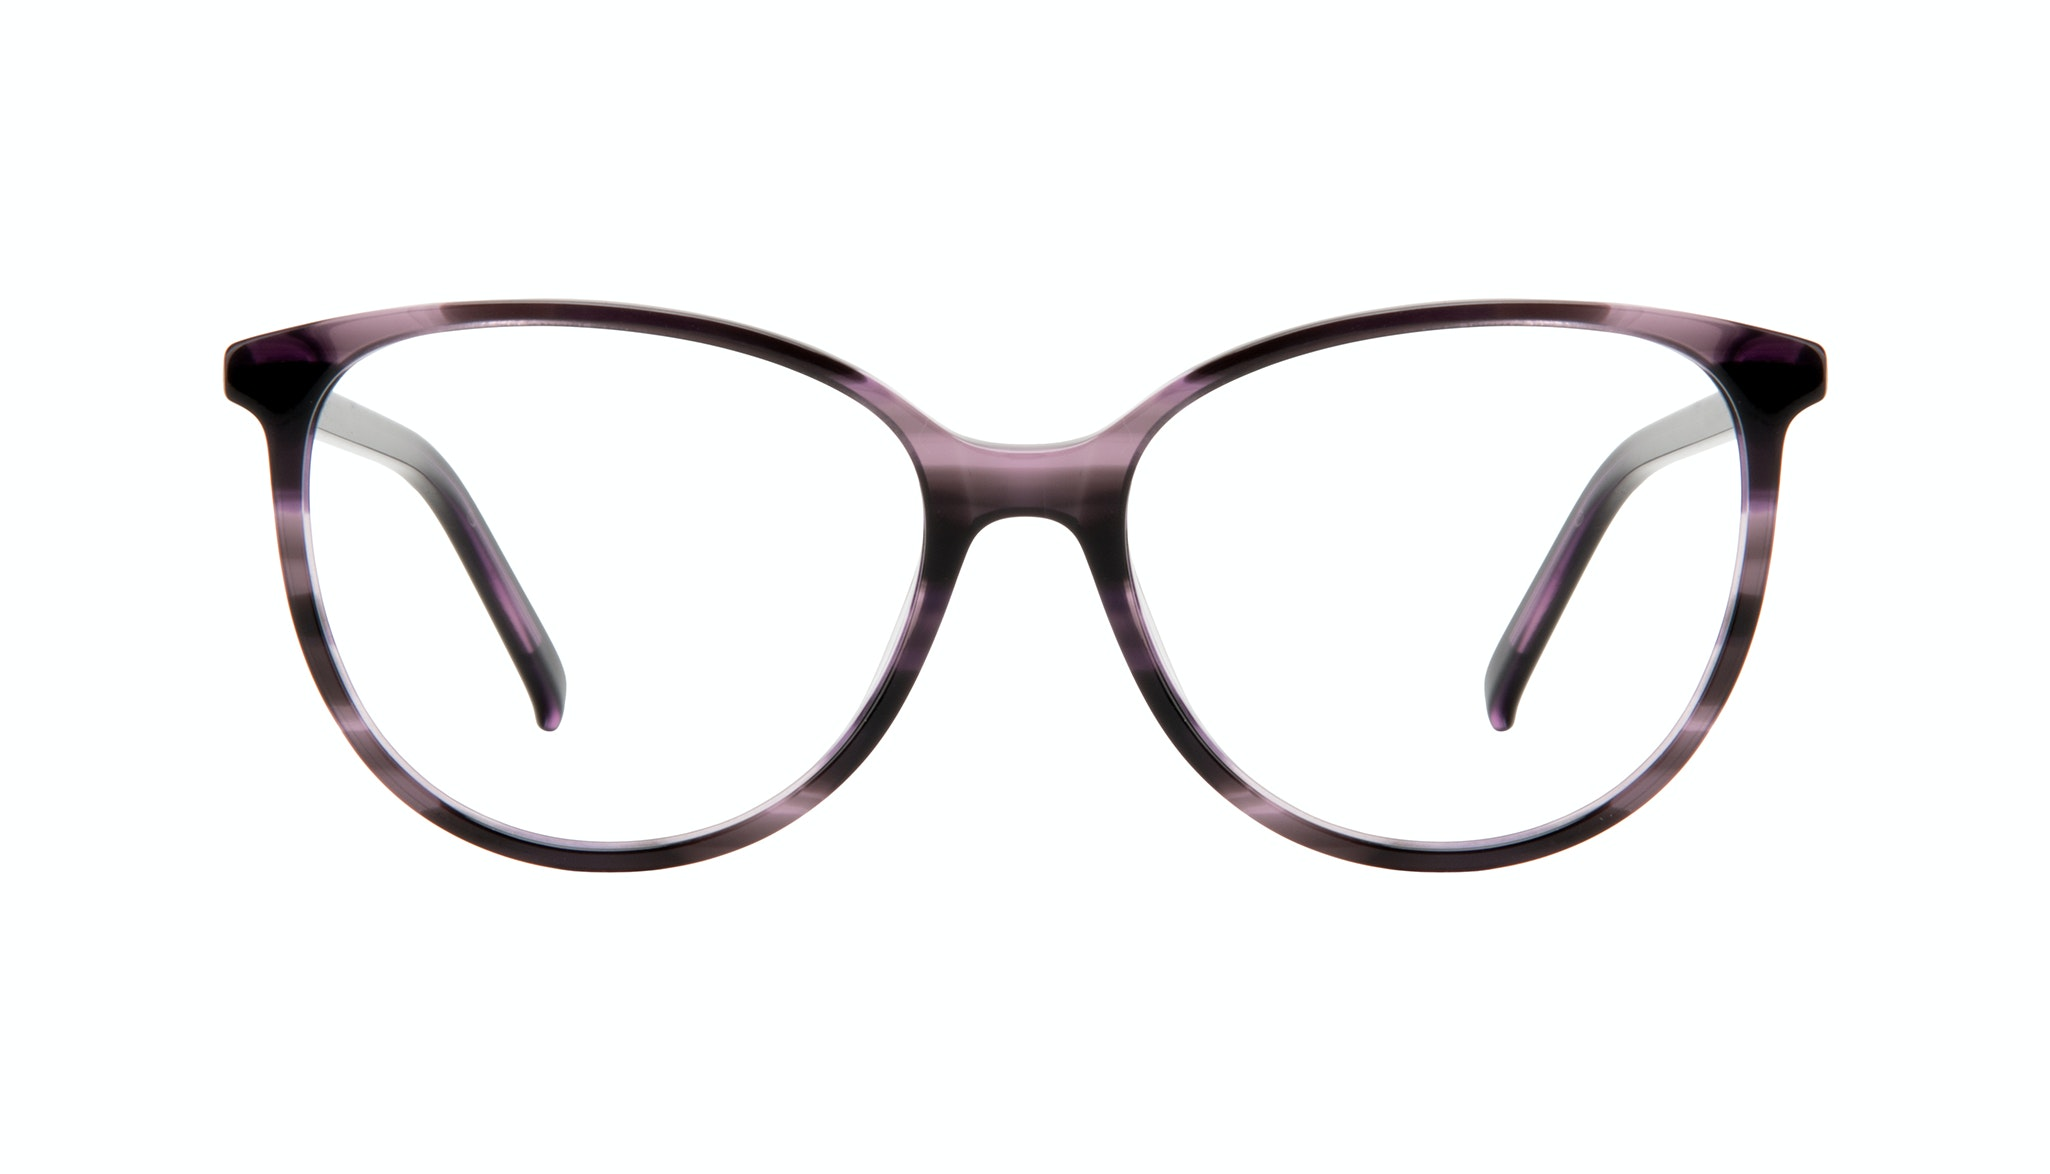 Affordable Fashion Glasses Round Eyeglasses Women Imagine Leopard